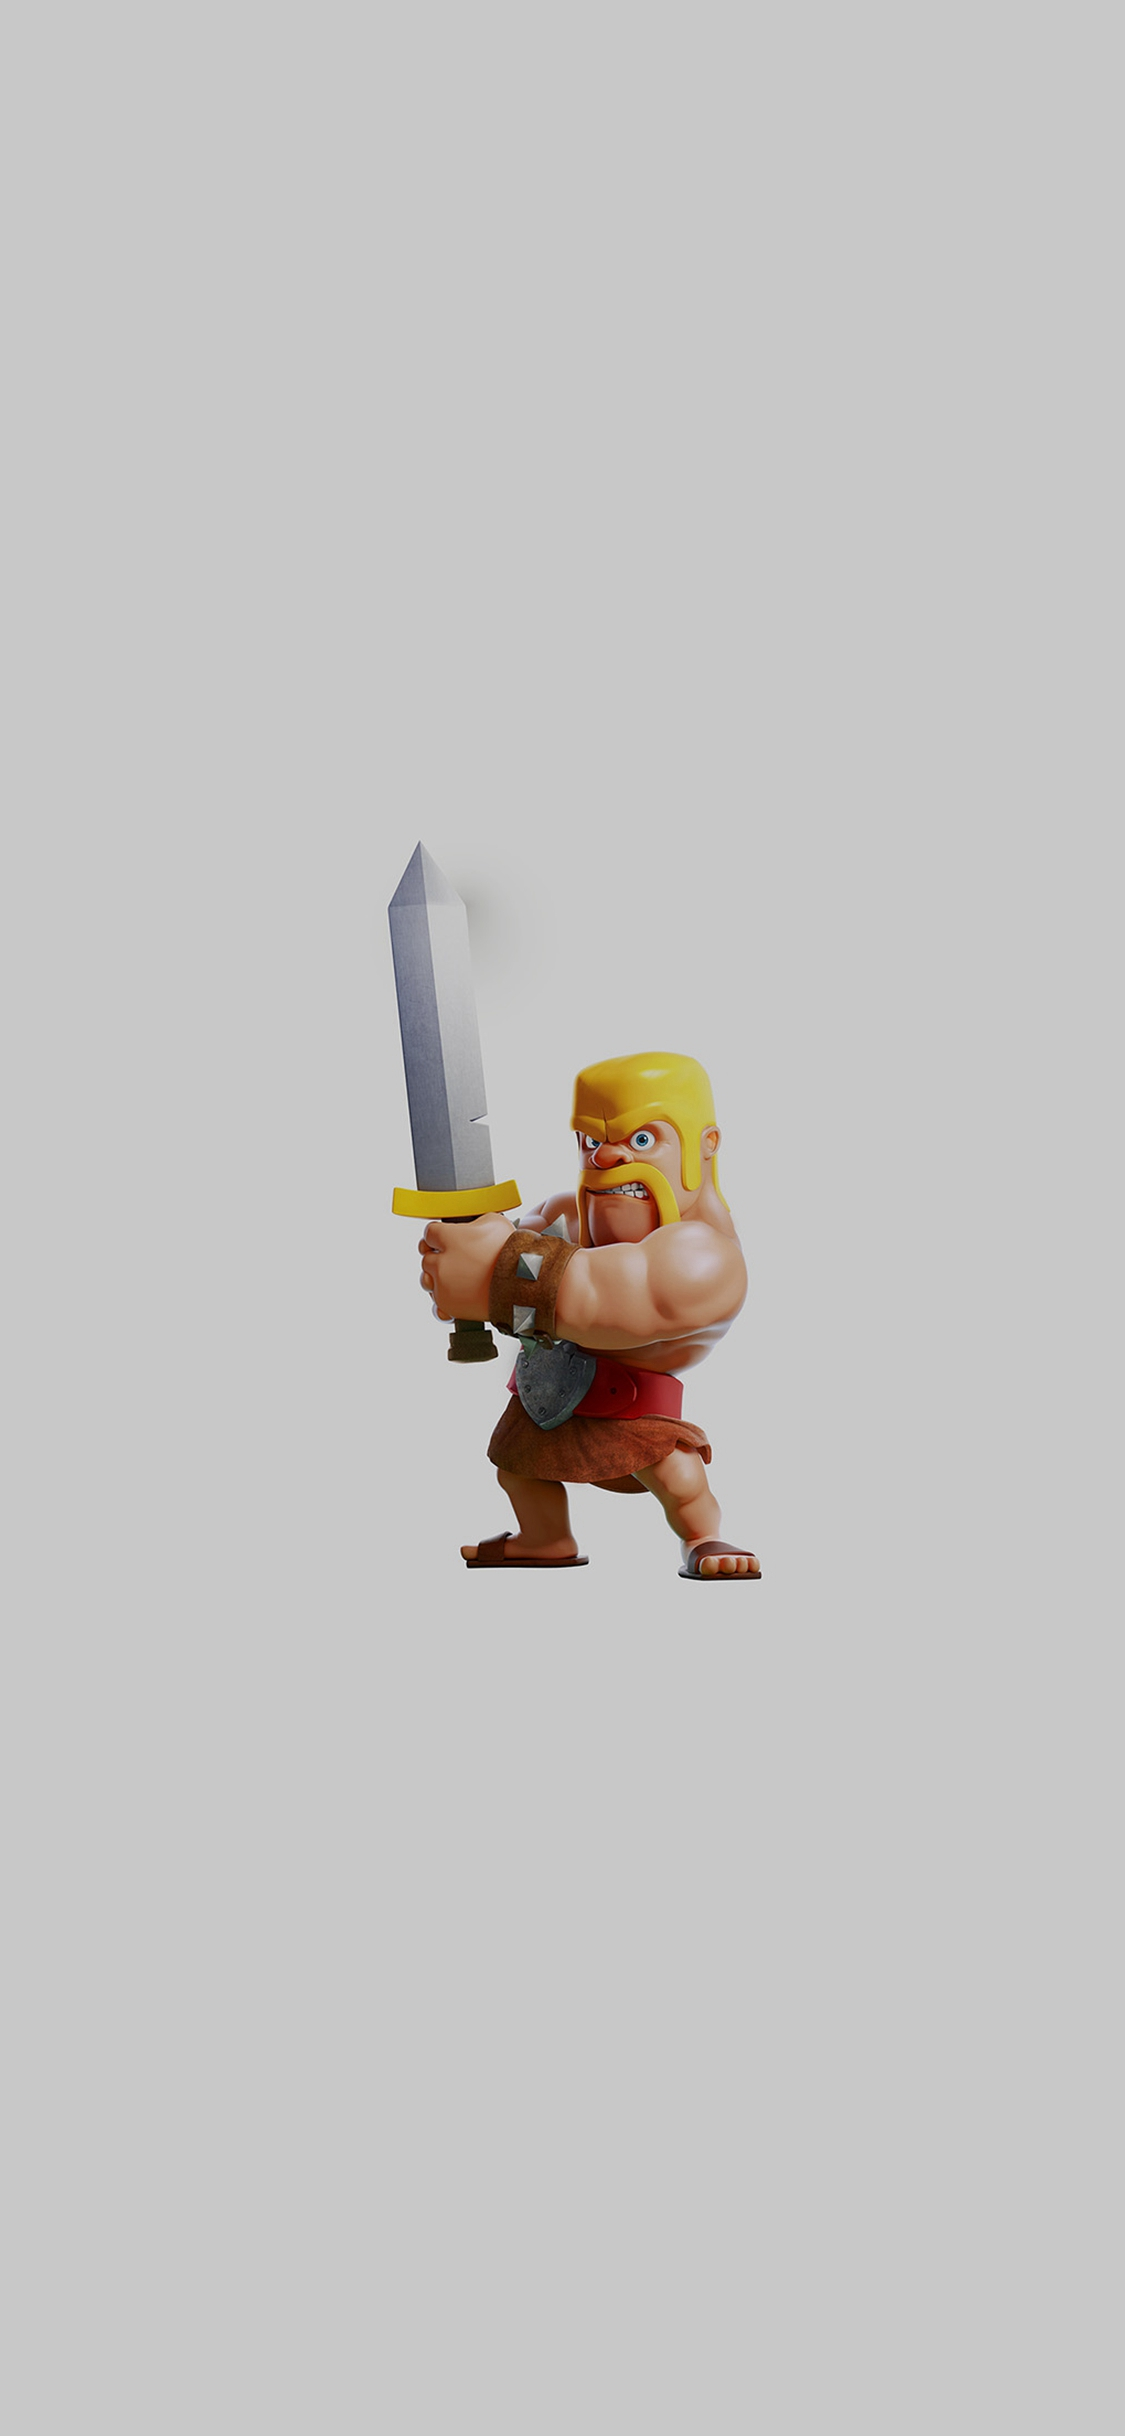 Barbarian Clash Of Clans Art Dark Game iPhone X wallpaper